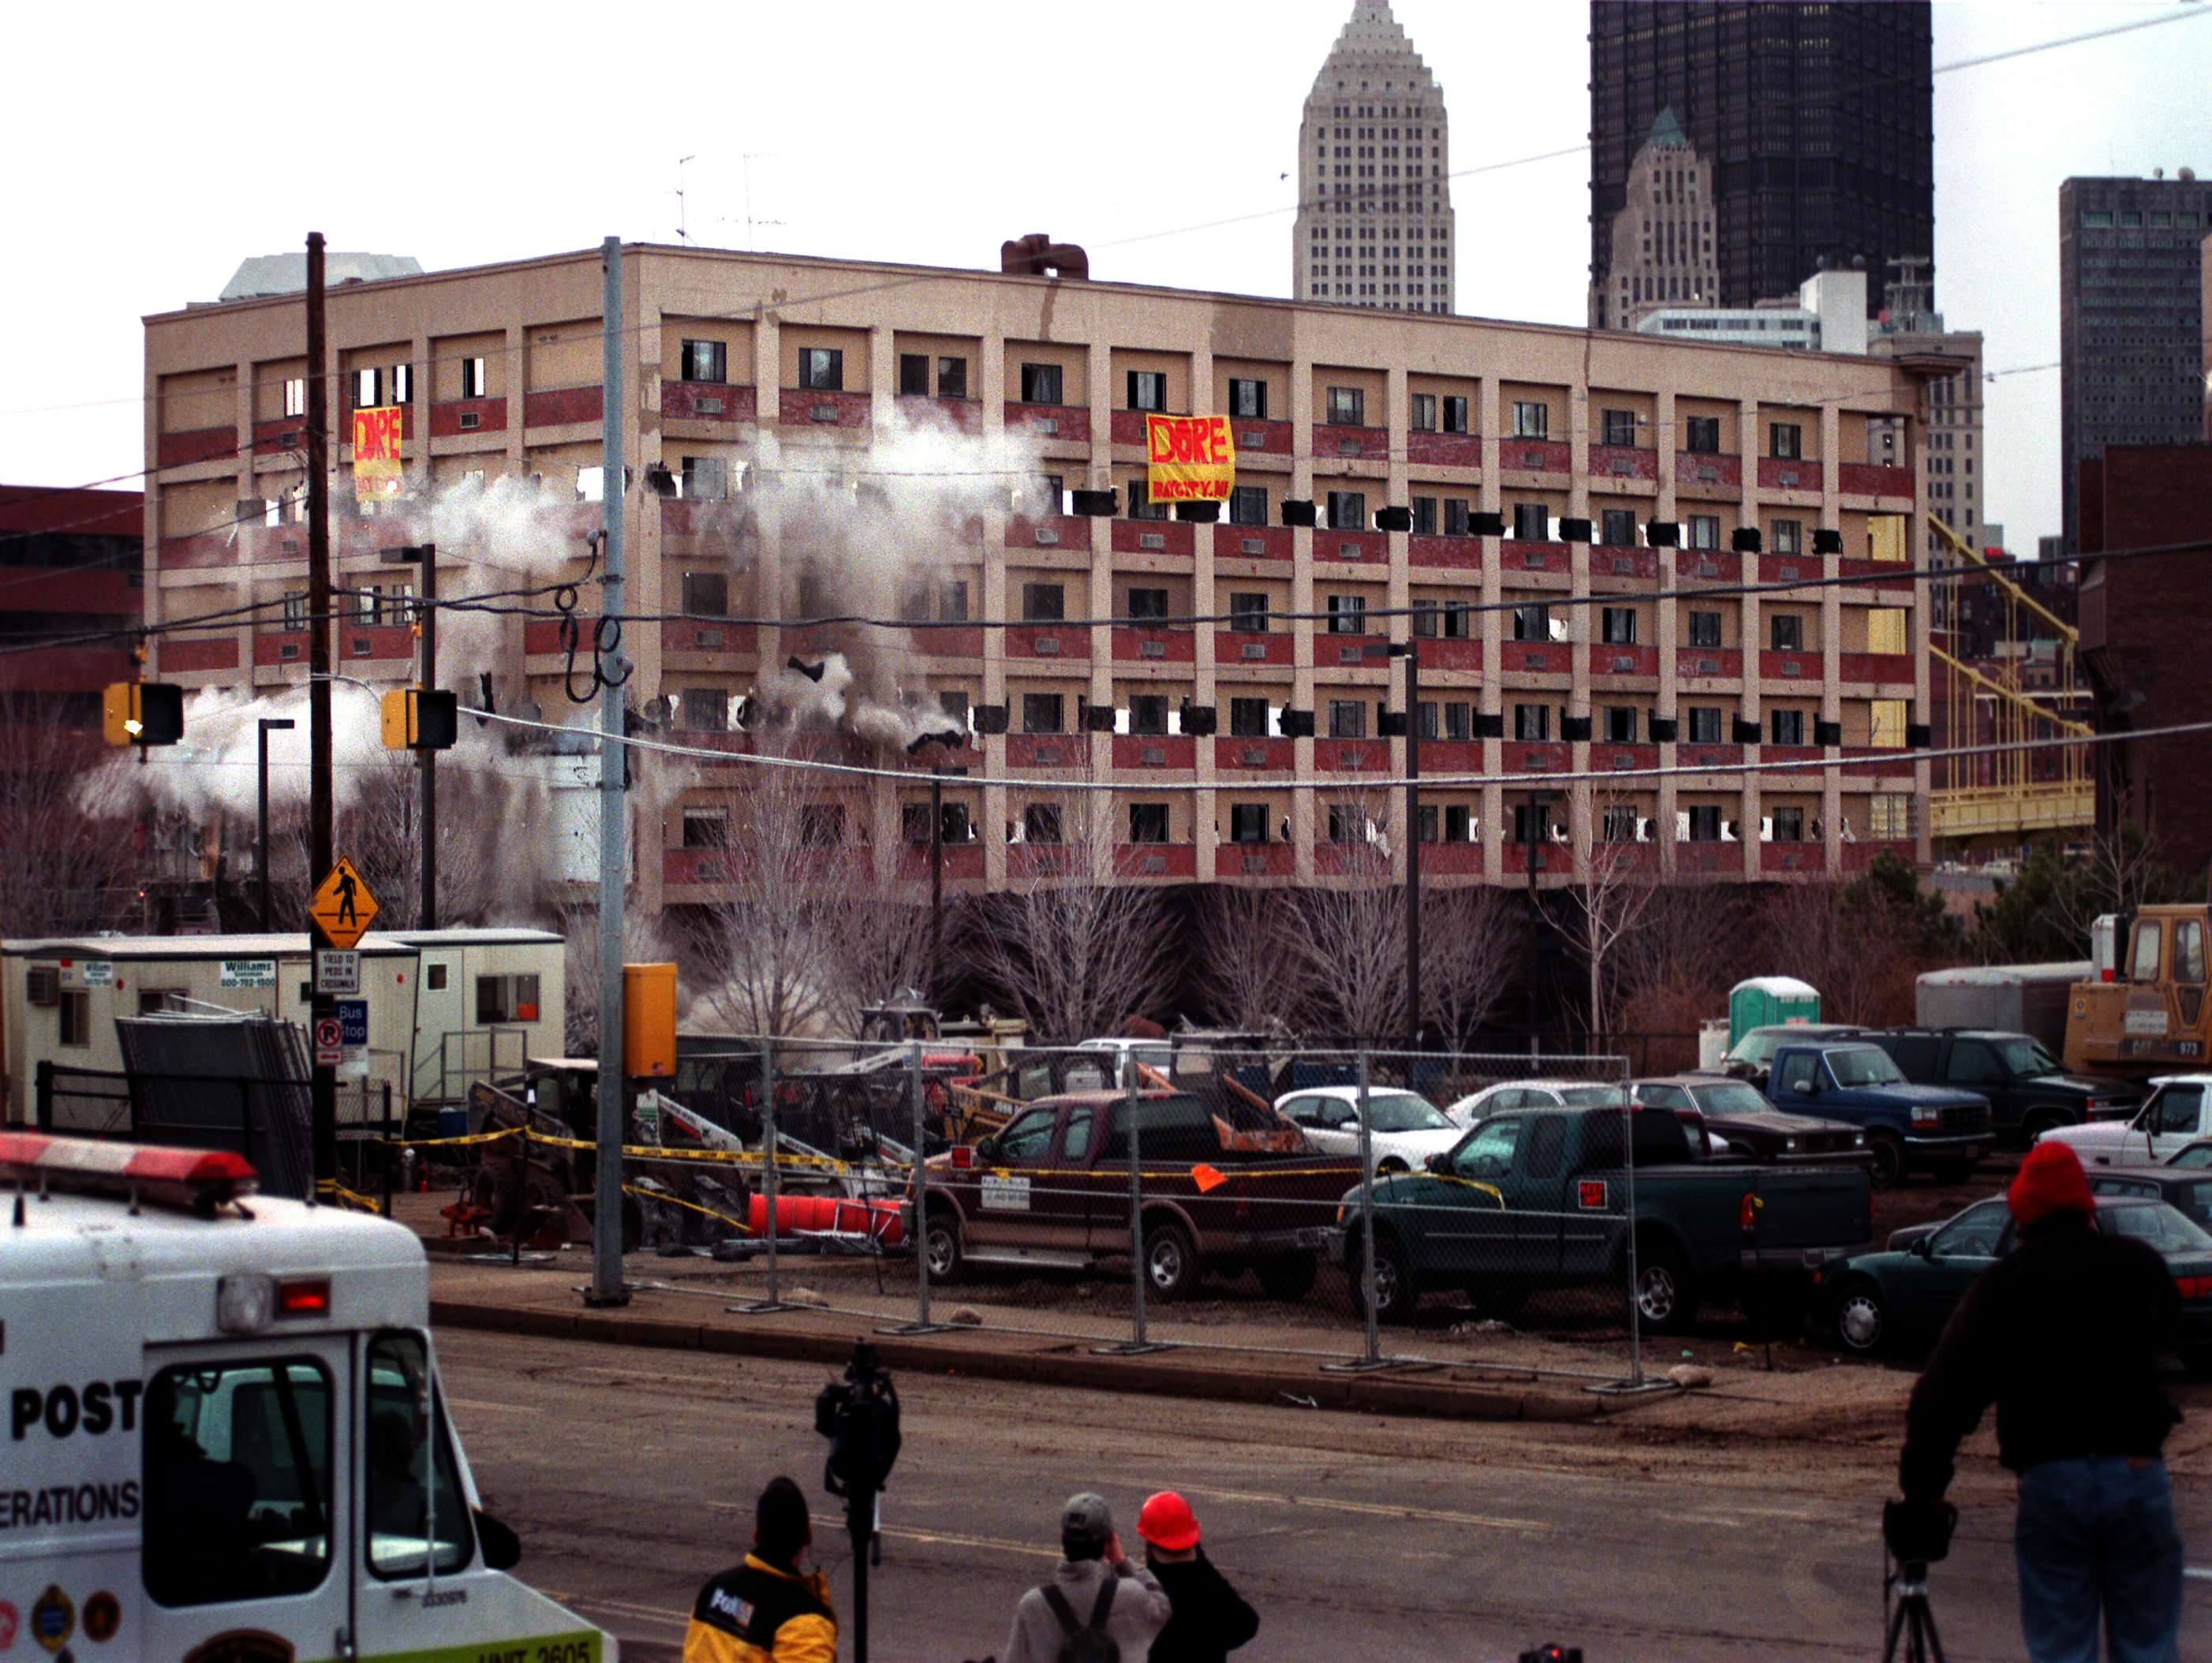 Three Rivers Plaza high rise apartment complex was imploded at 7 a.m. Watching the implosion are construction workers, invited guests and media from the command post center on Gen. Robinson. The apartment was demolished to make way for a new baseball stadium complex on the North Side. (Post-Gazette photo)